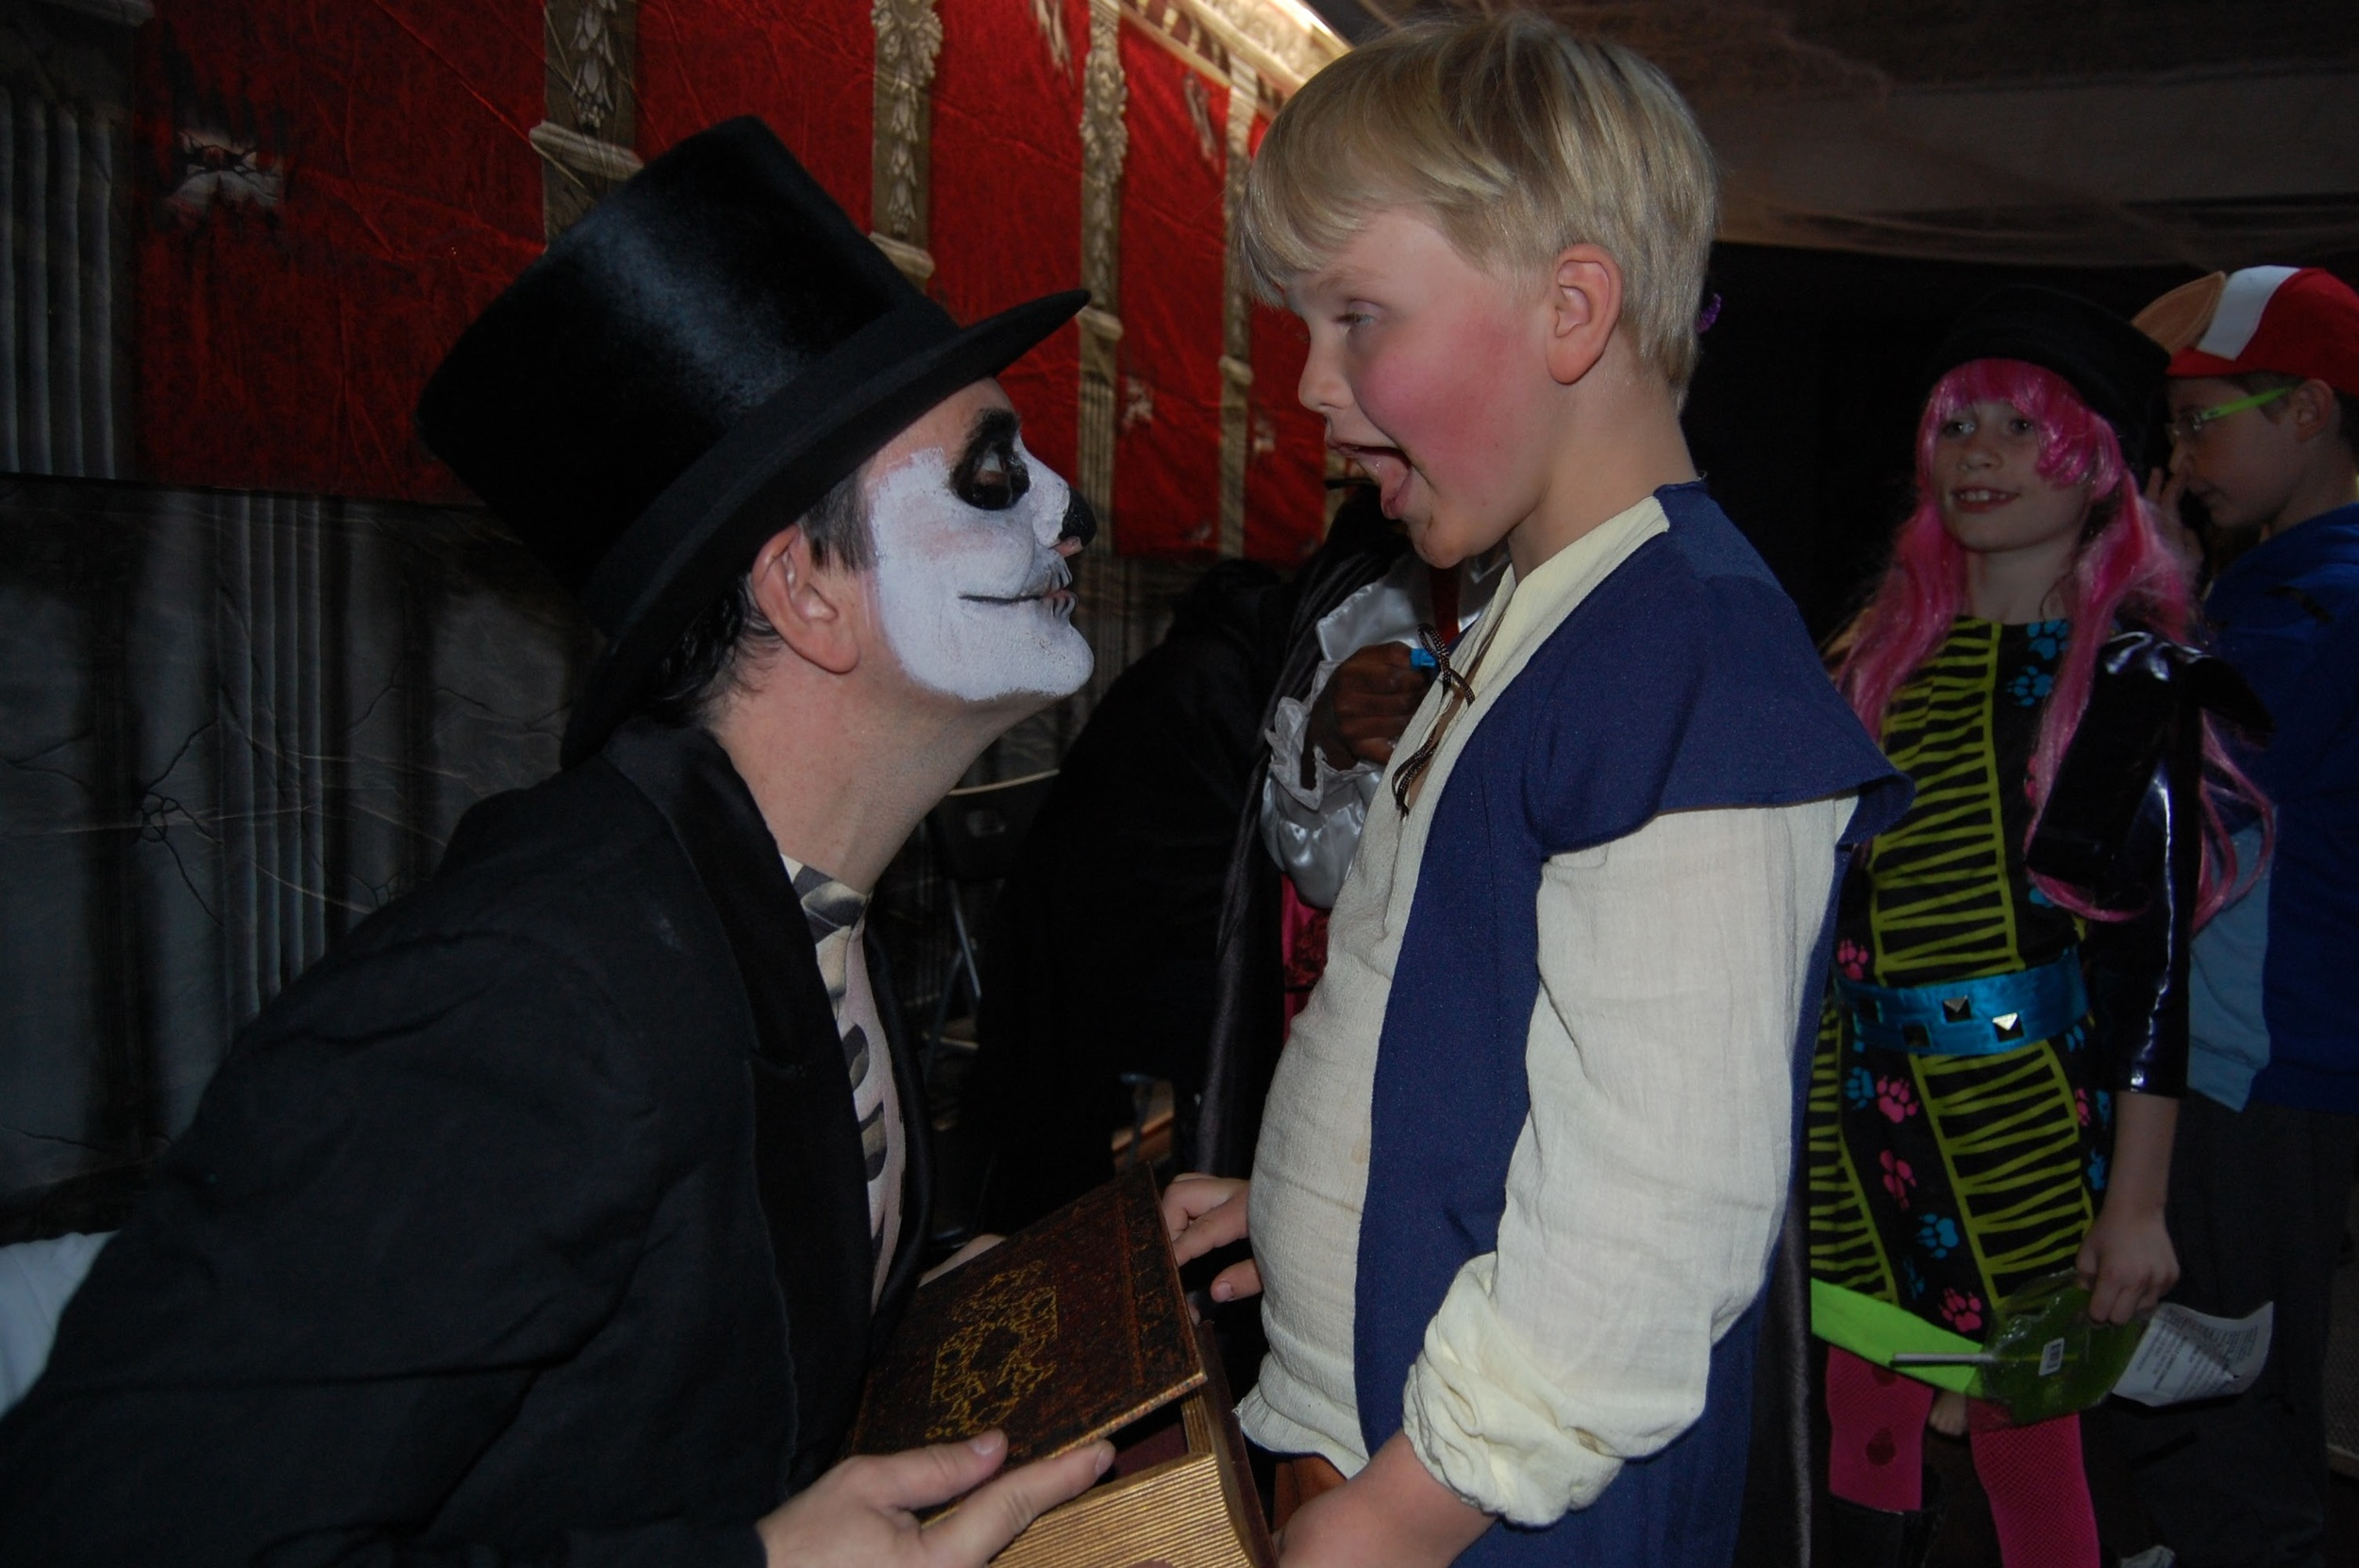 Check out the photos from our Halloween Party!